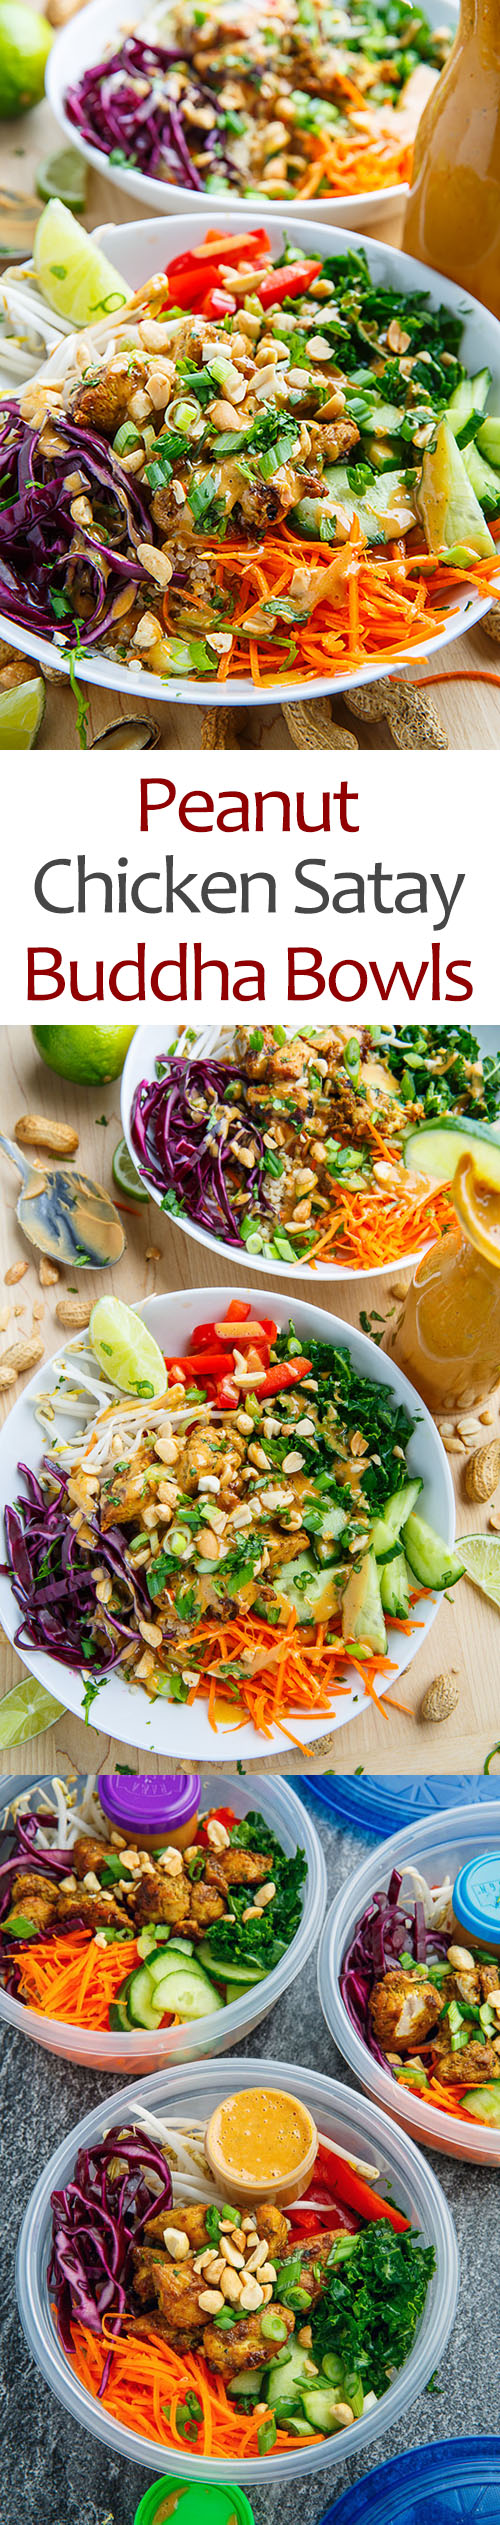 Thai Peanut Chicken Buddha Bowls - Meal Prep